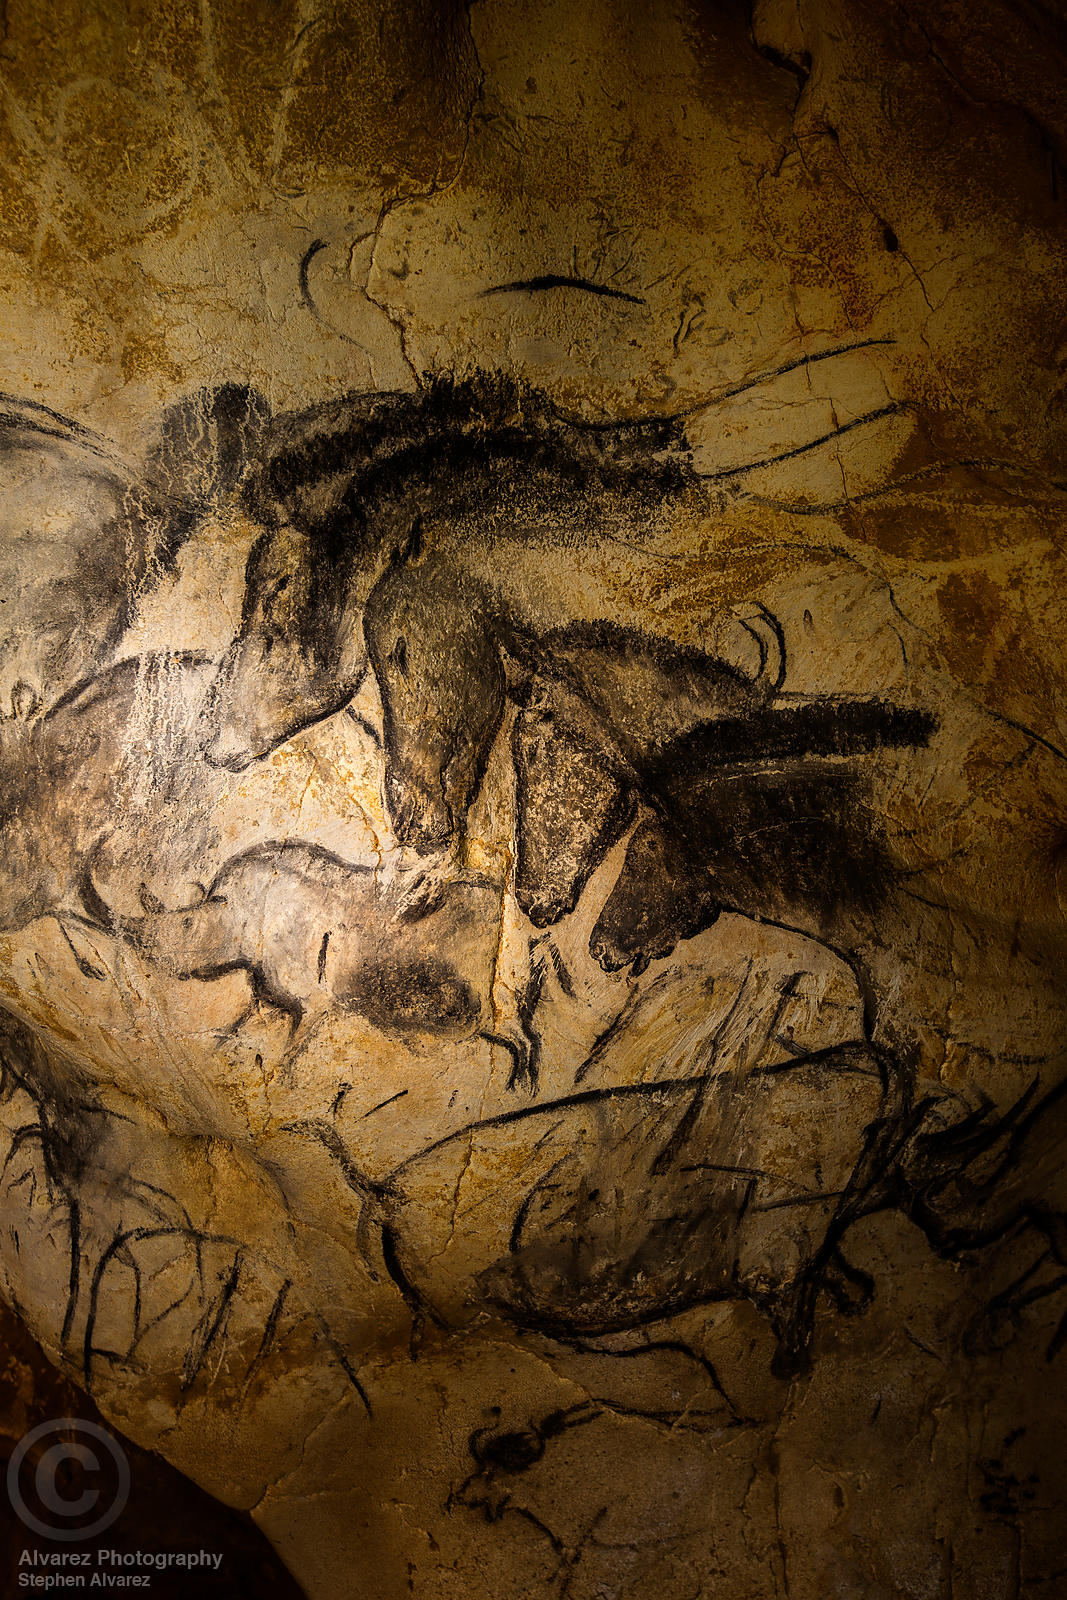 Four horses panel in Chauvet Cave, Ardeche France.